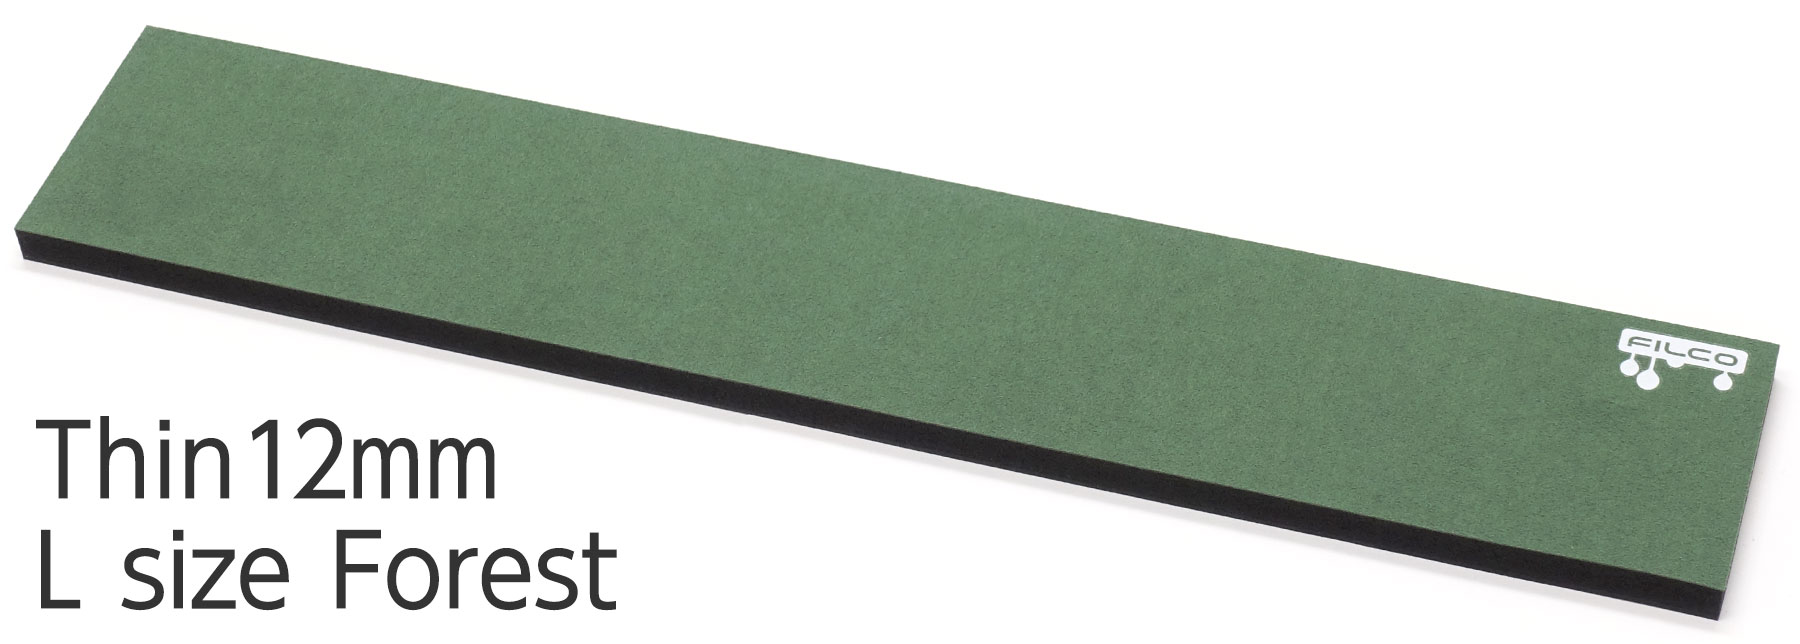 "FILCO Majestouch Wrist Rest ""Macaron"" Thin 12mm / L size / Forest"